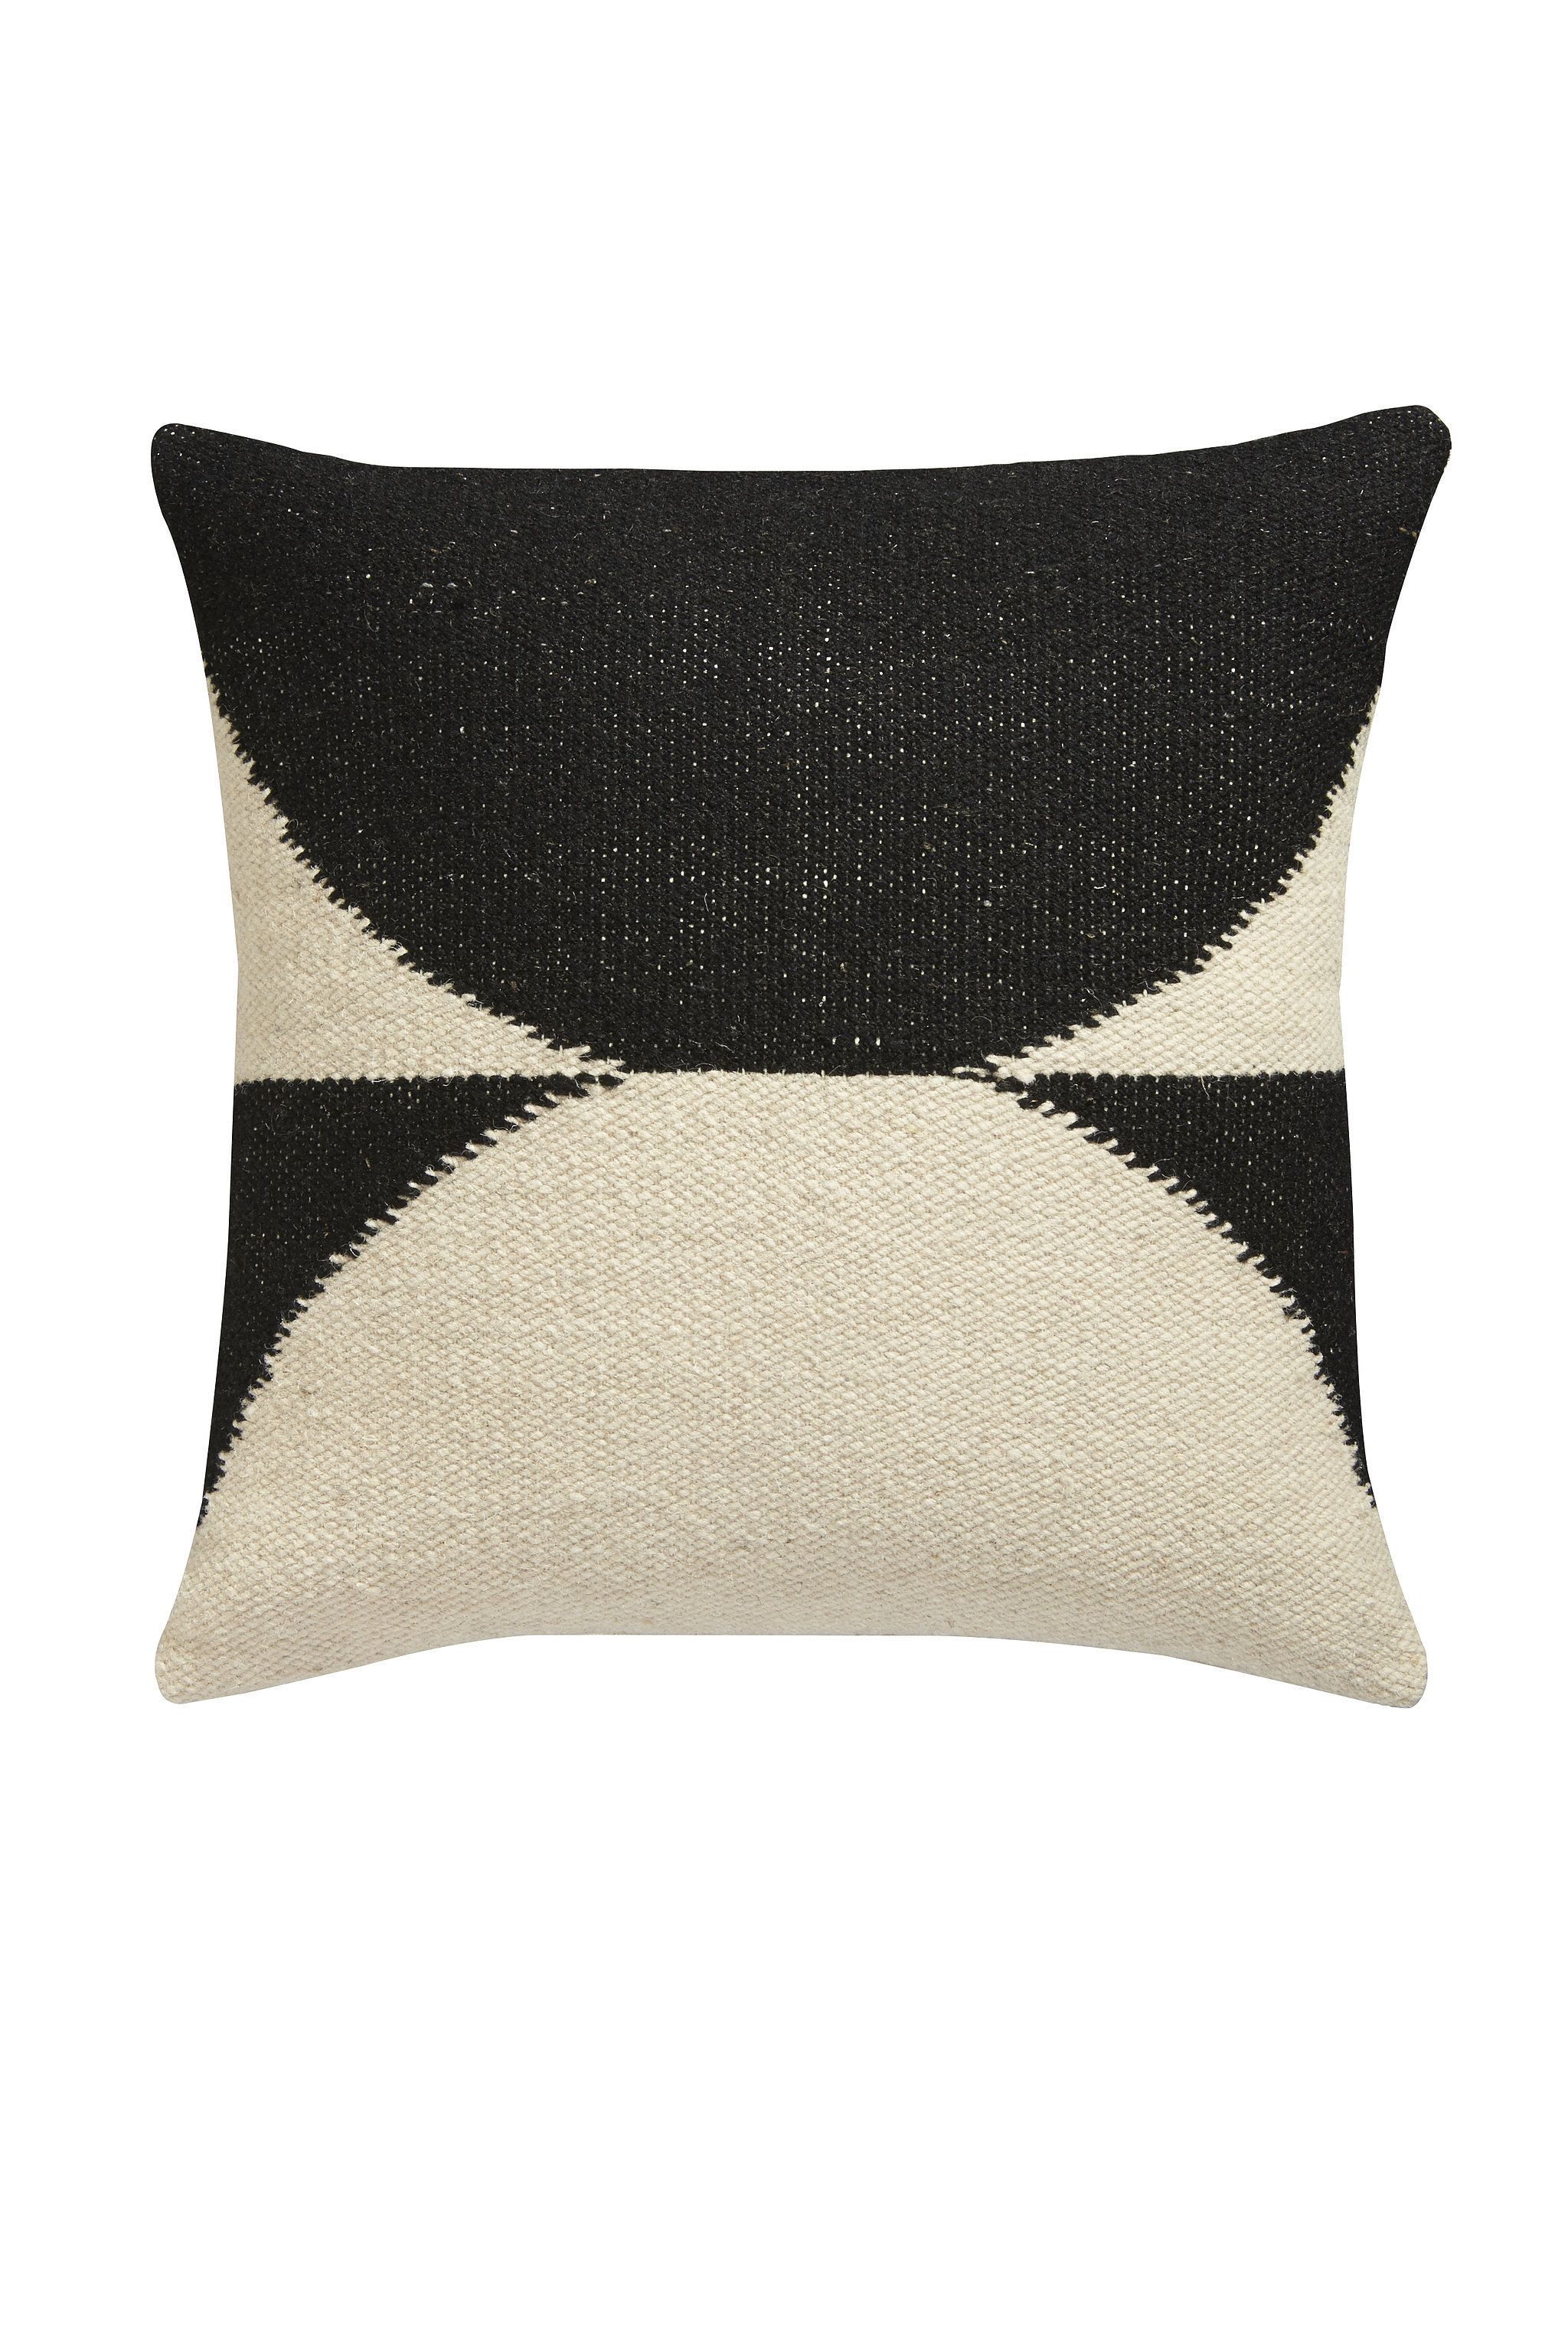 "Lenny Kravitz for CB2 ""Reflect Wool Pillow"" for $80"